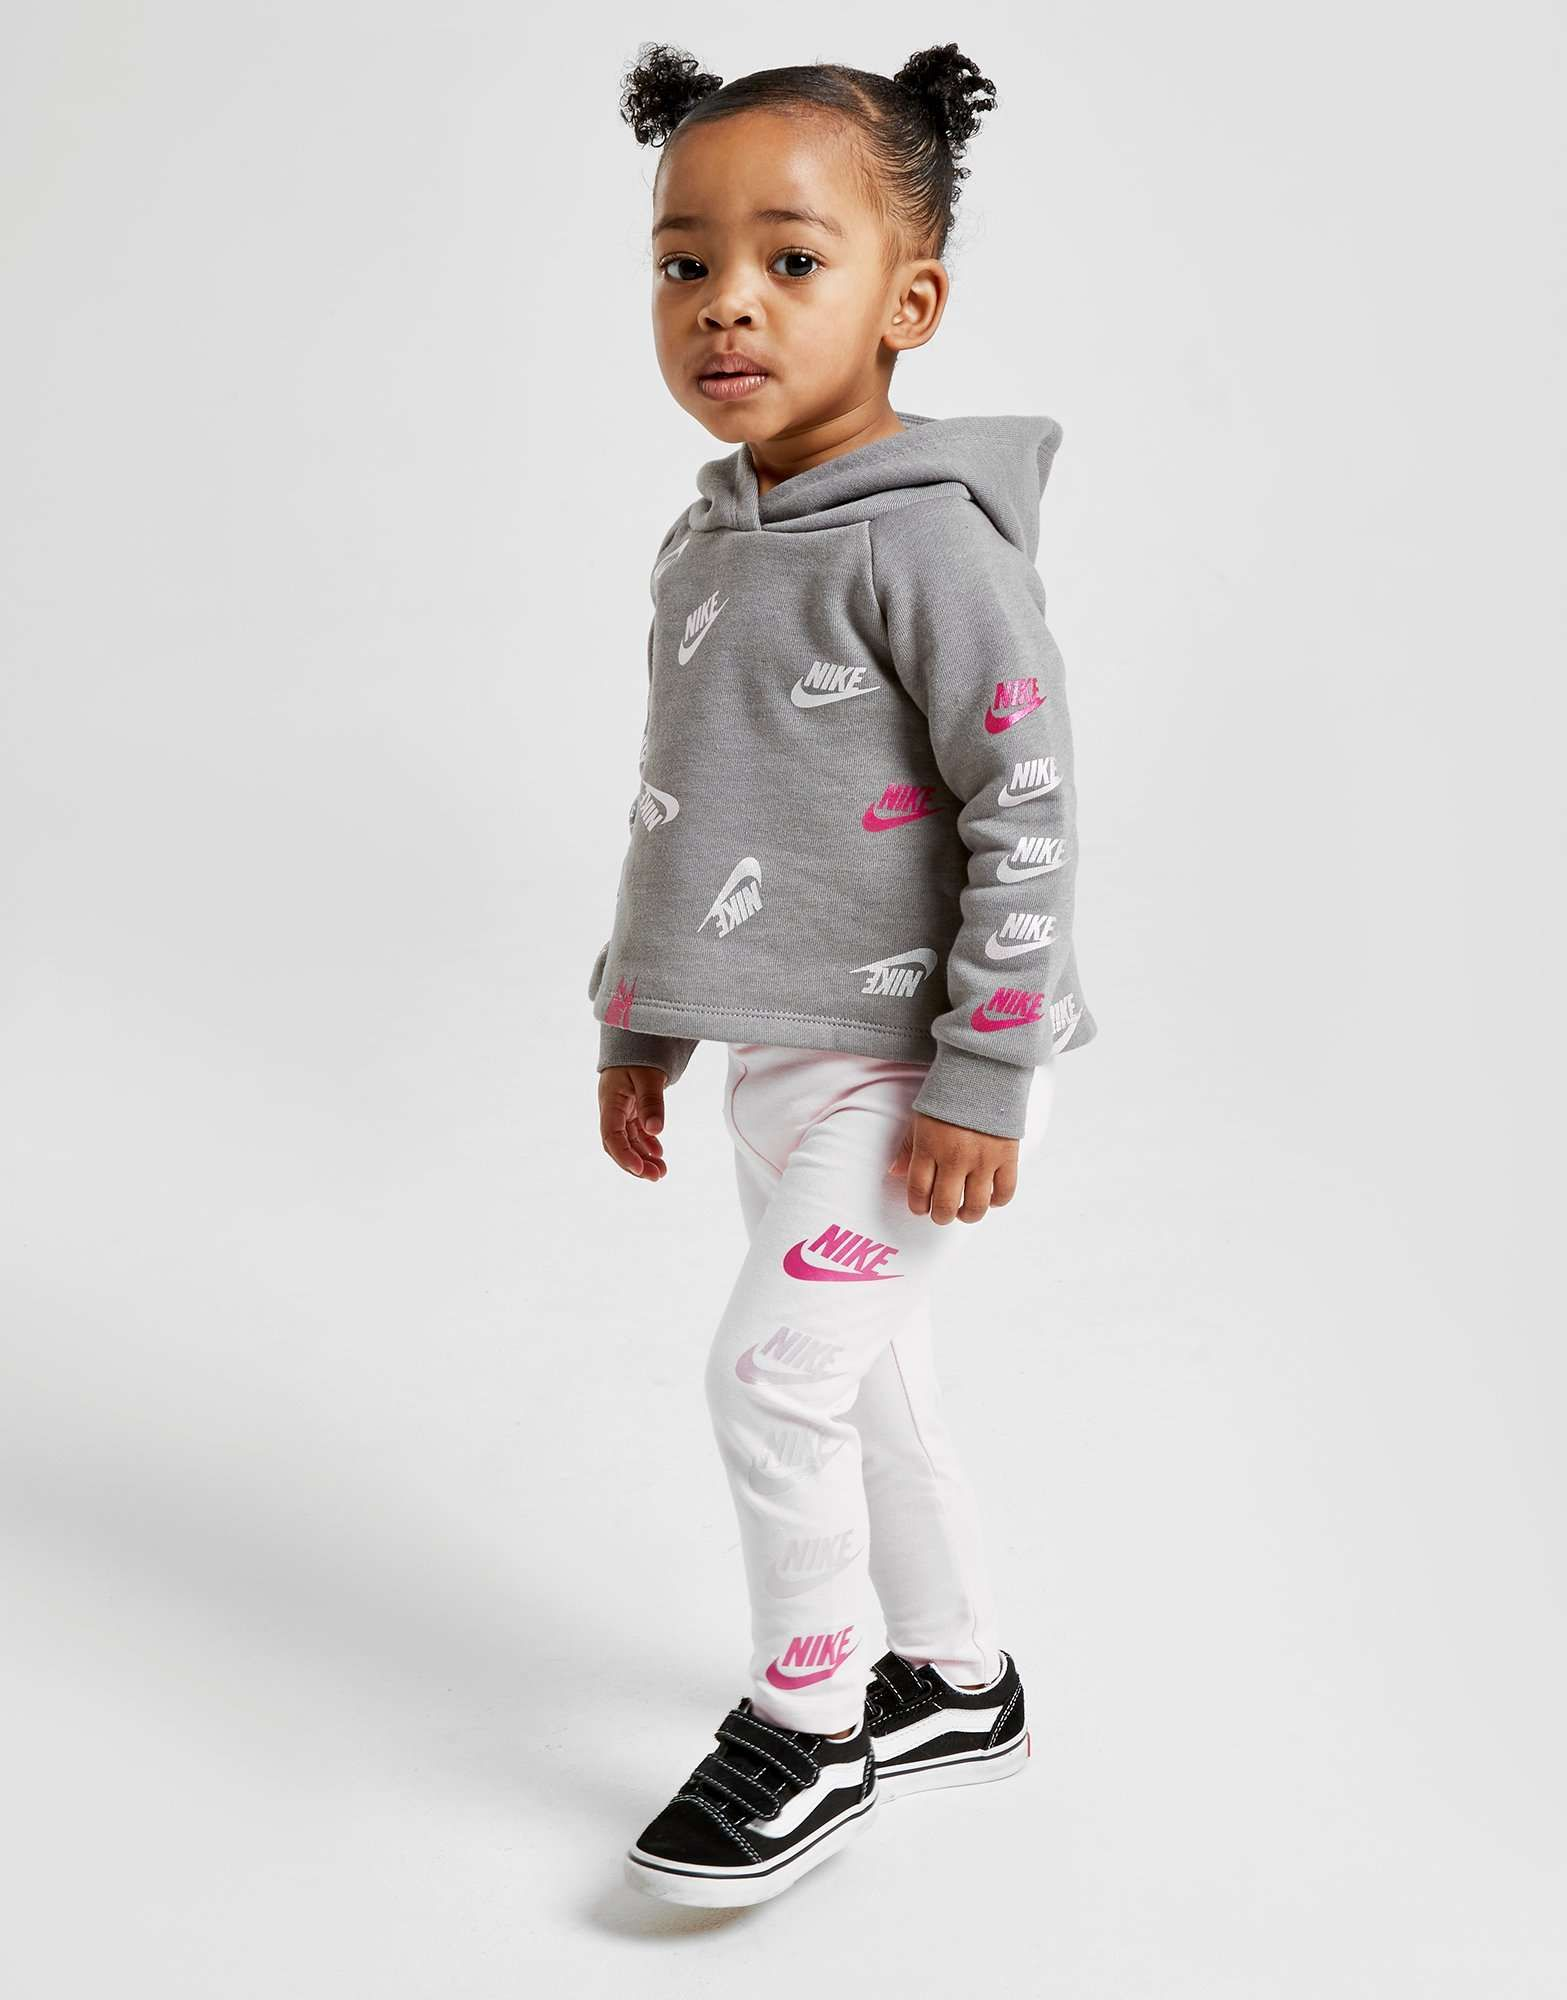 nike girls all over print futura tracksuit infant jd sports nikes girl tracksuit kids fashion www pinterest co kr